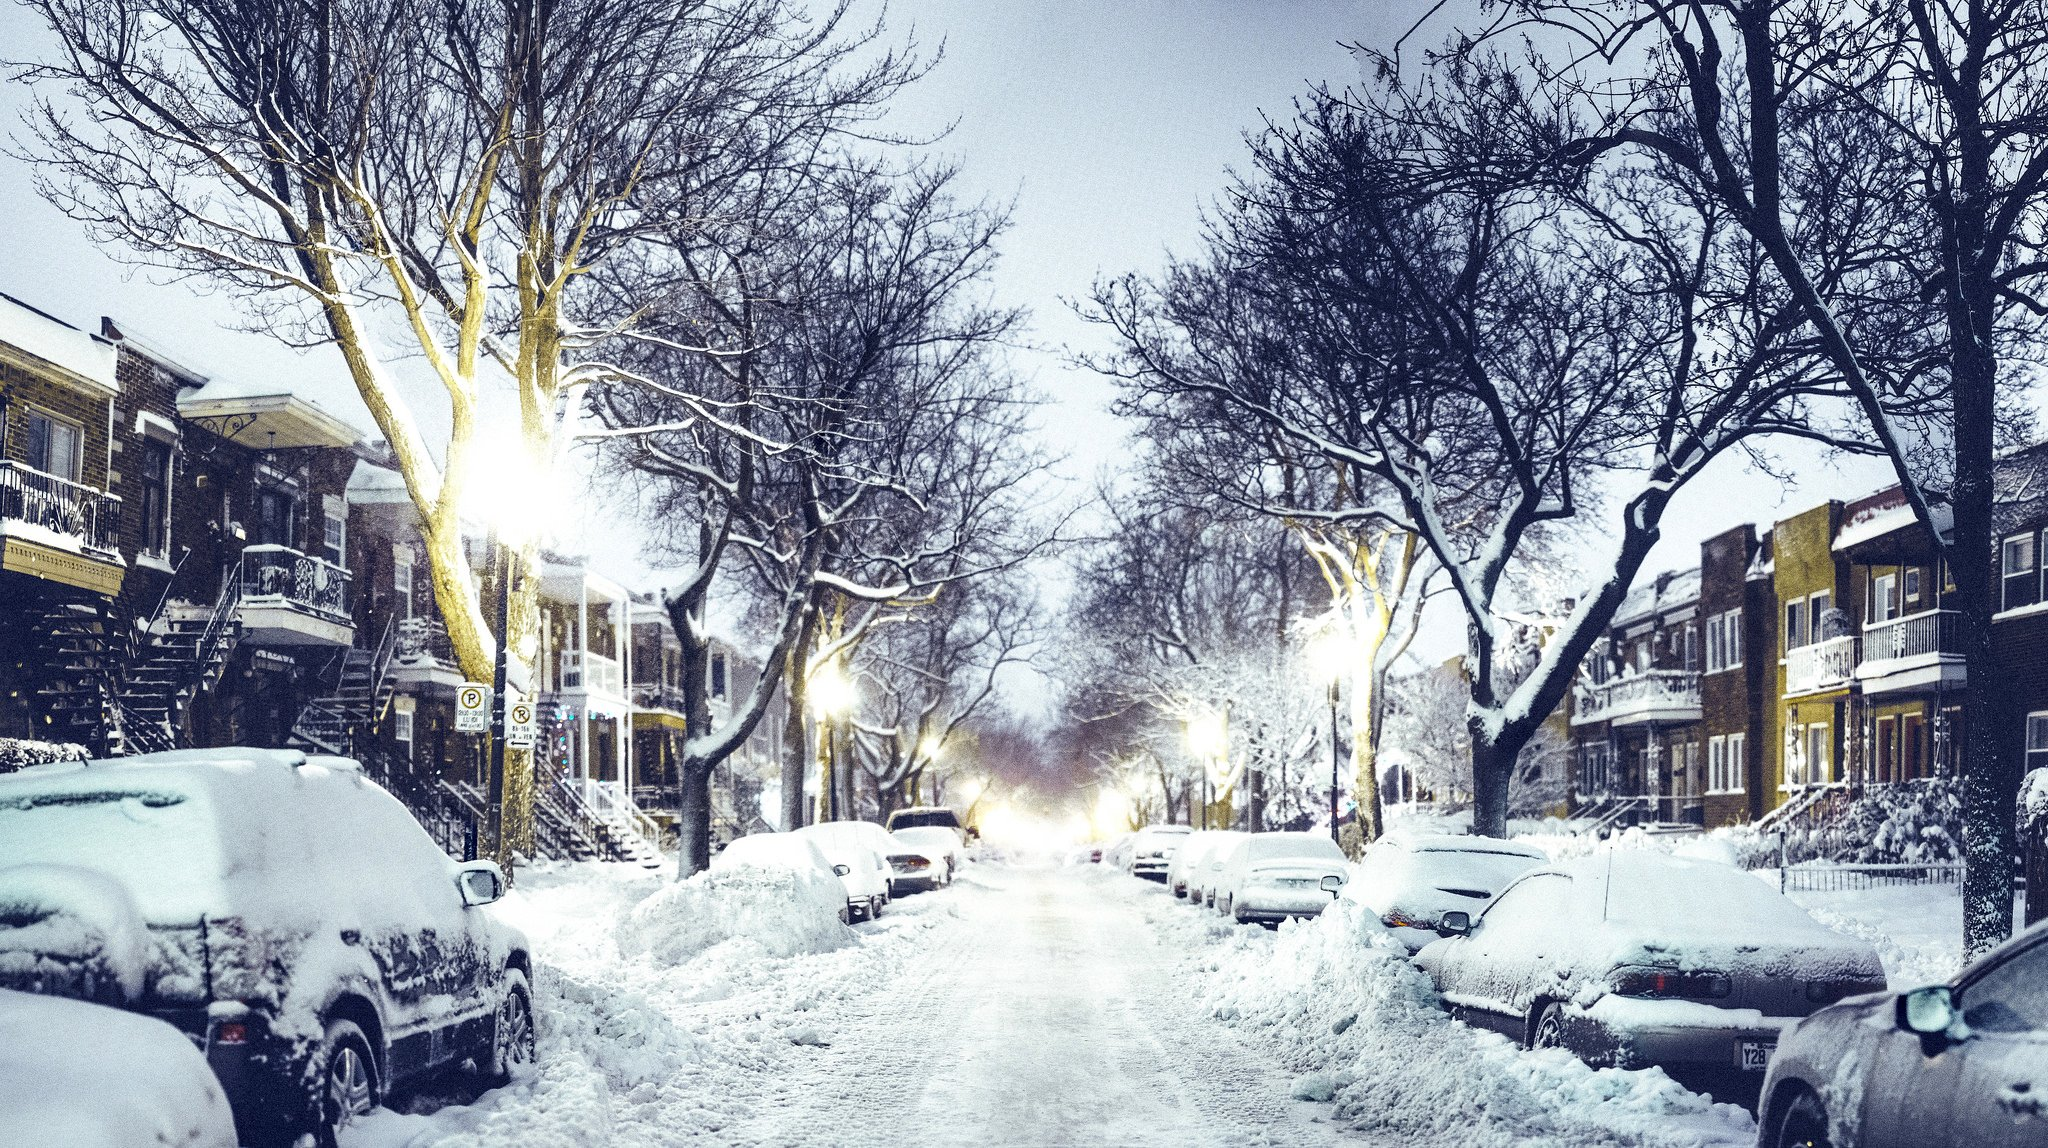 winter city street - photo #21